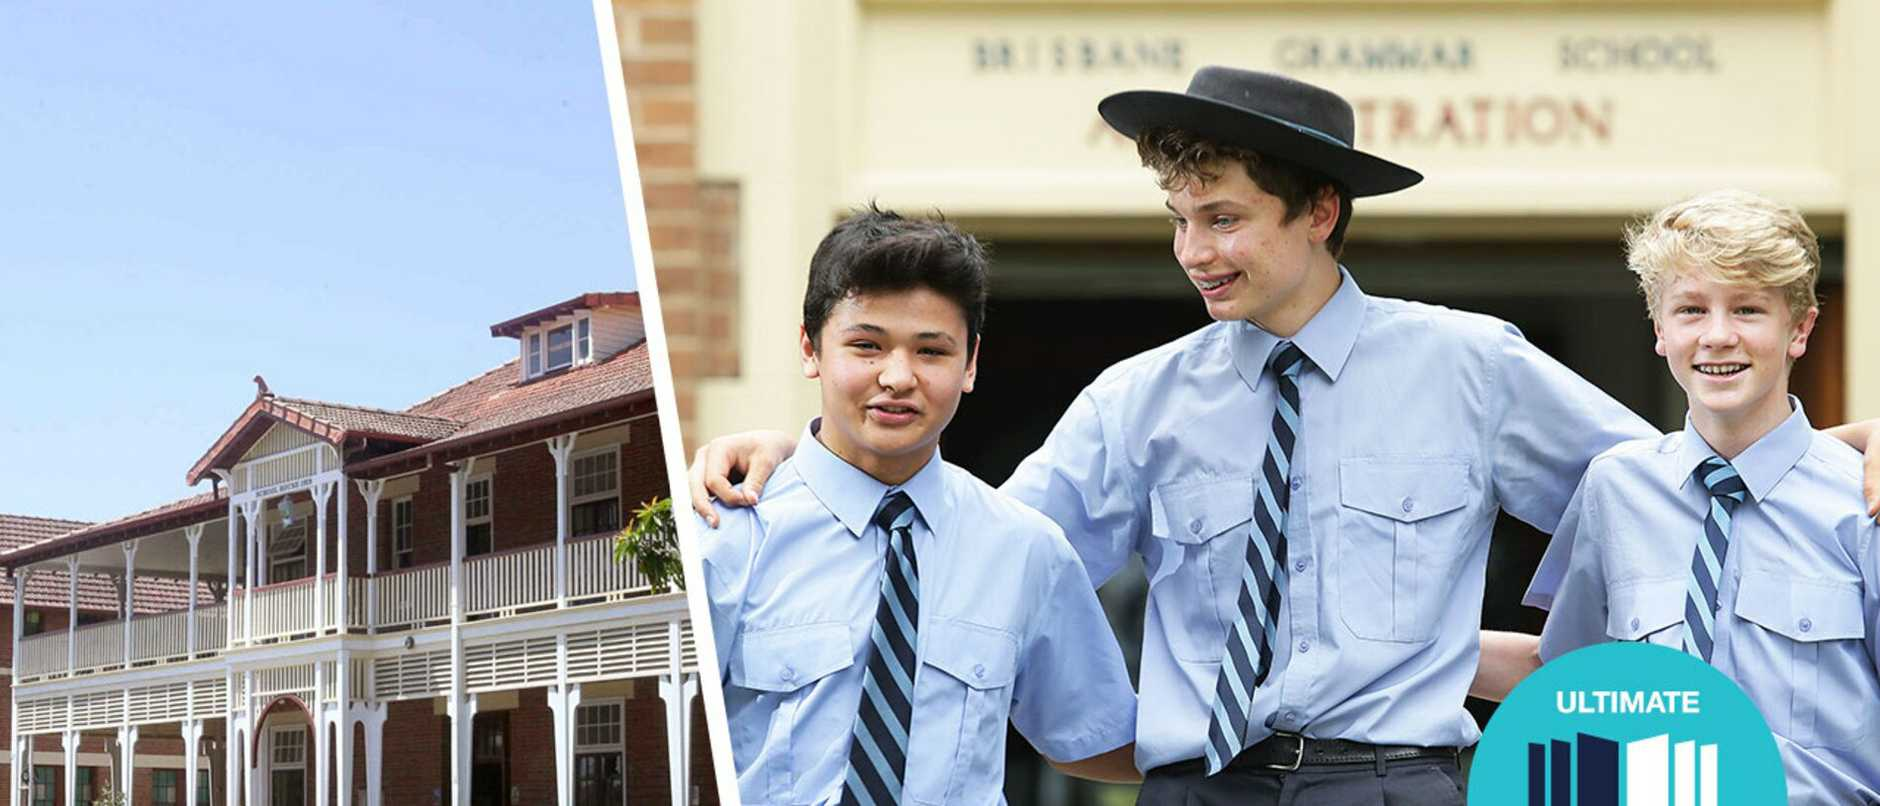 Parents are now shelling out over $250,000 to send their children to private school over 12 years, exclusive analysis reveals.